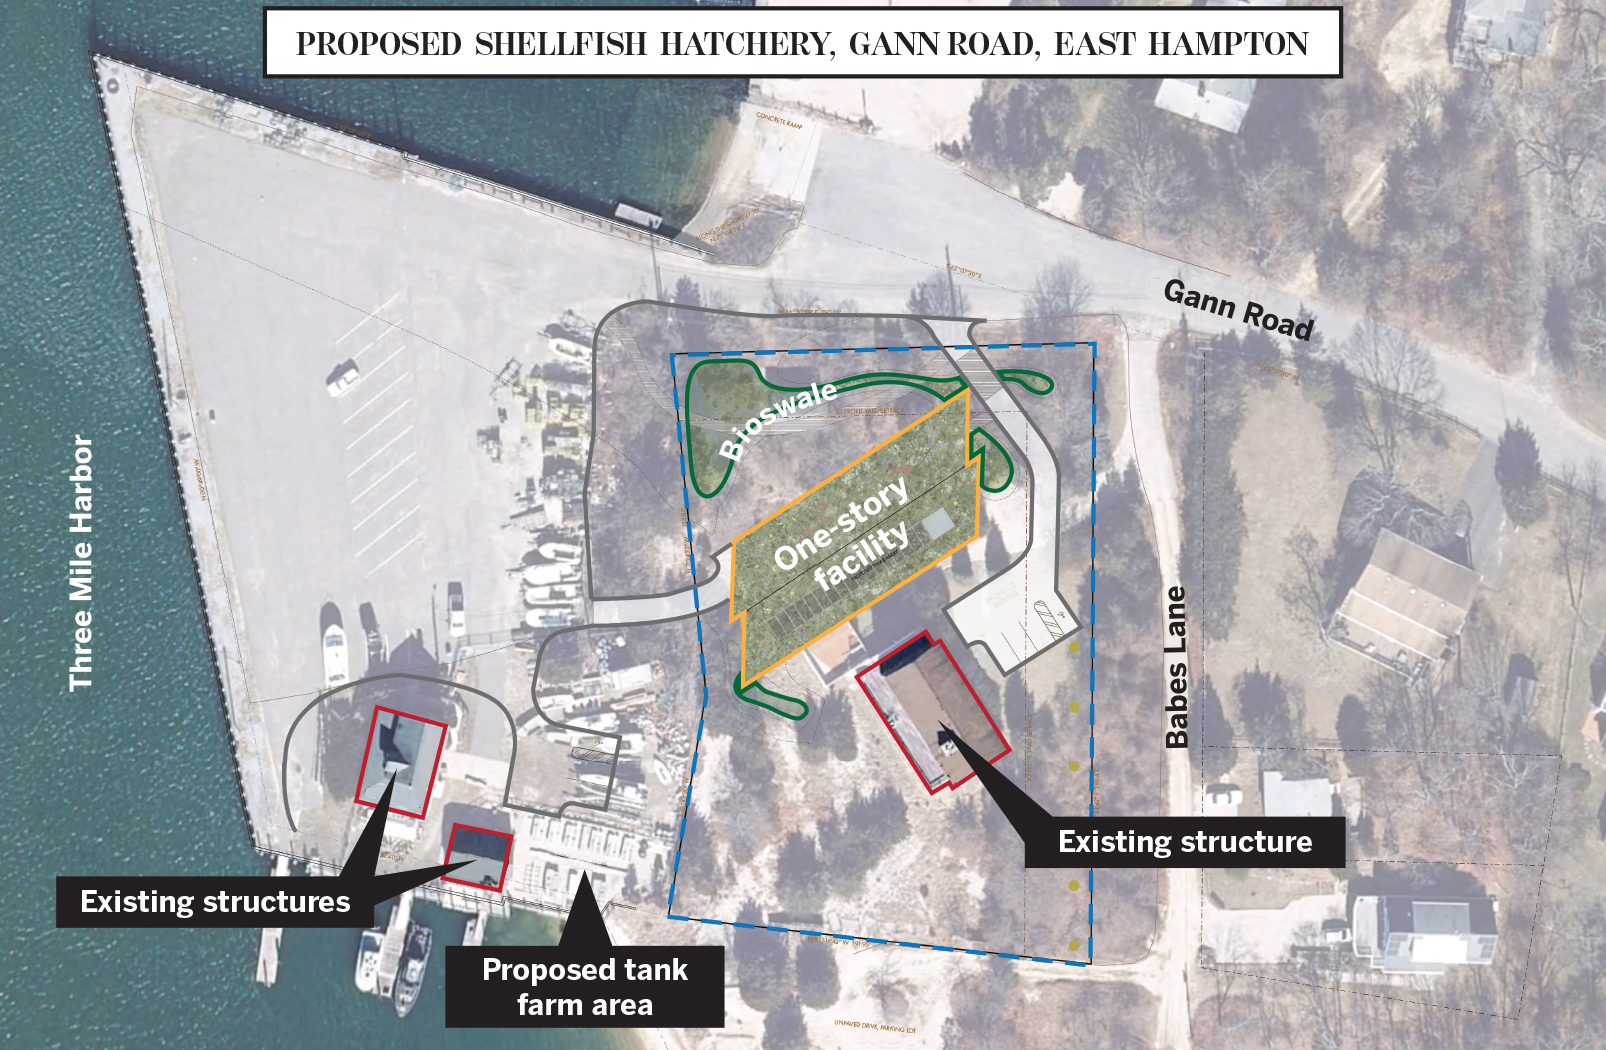 The town's plans for the Gann Road property call for linking the new hatchery facility to the existing town parking lot and hatchery operations.